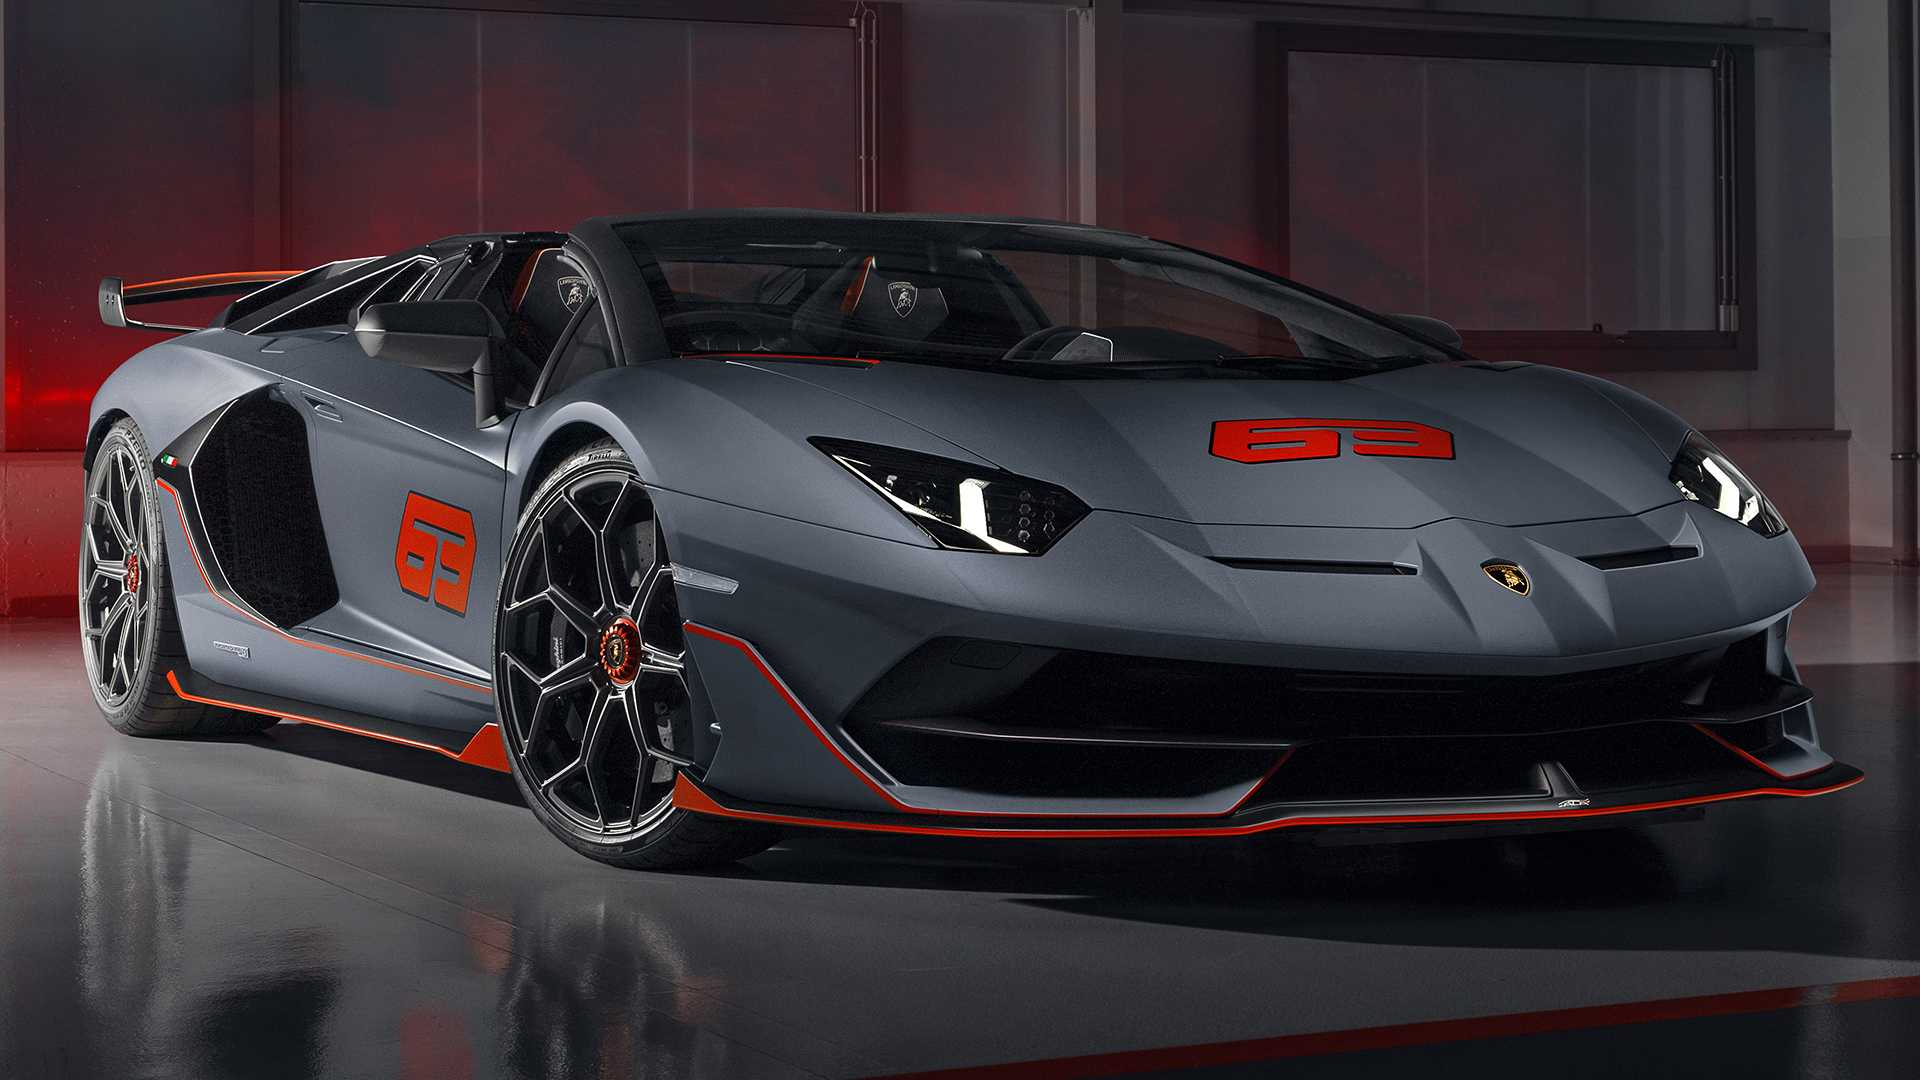 27 The Best 2020 Lamborghini Aventador SVJ Reviews